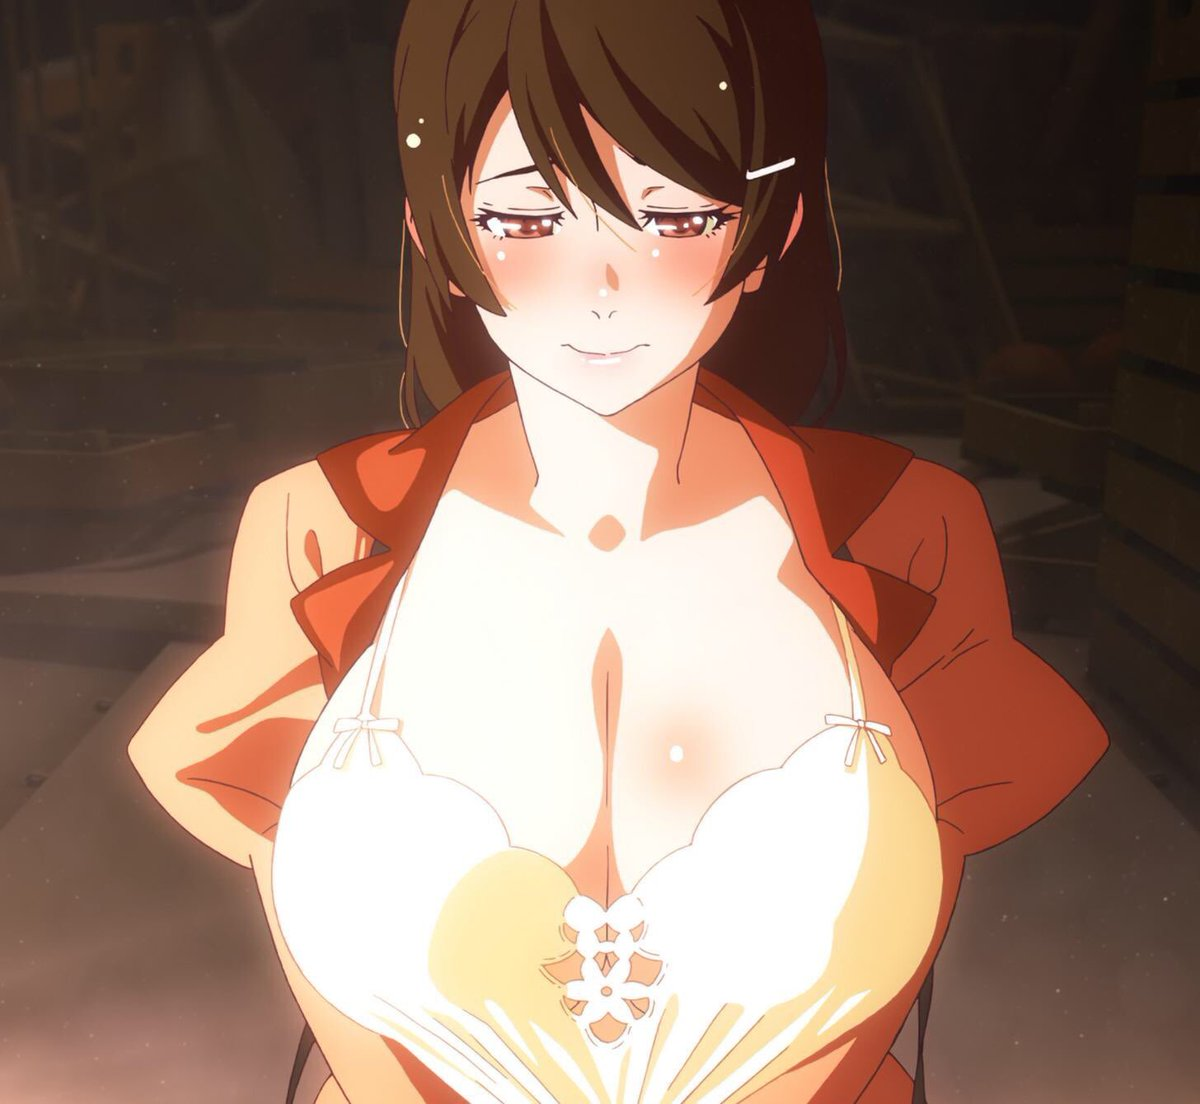 Monogatari big boobs Key Cr Ez Tohruszn On Twitter I Need This Woman To Use Her Overly Plump And Fatty Breasts To Massage My Dick While She Sticks Her Tongue Directly Into My Dick Hole Forcing It To